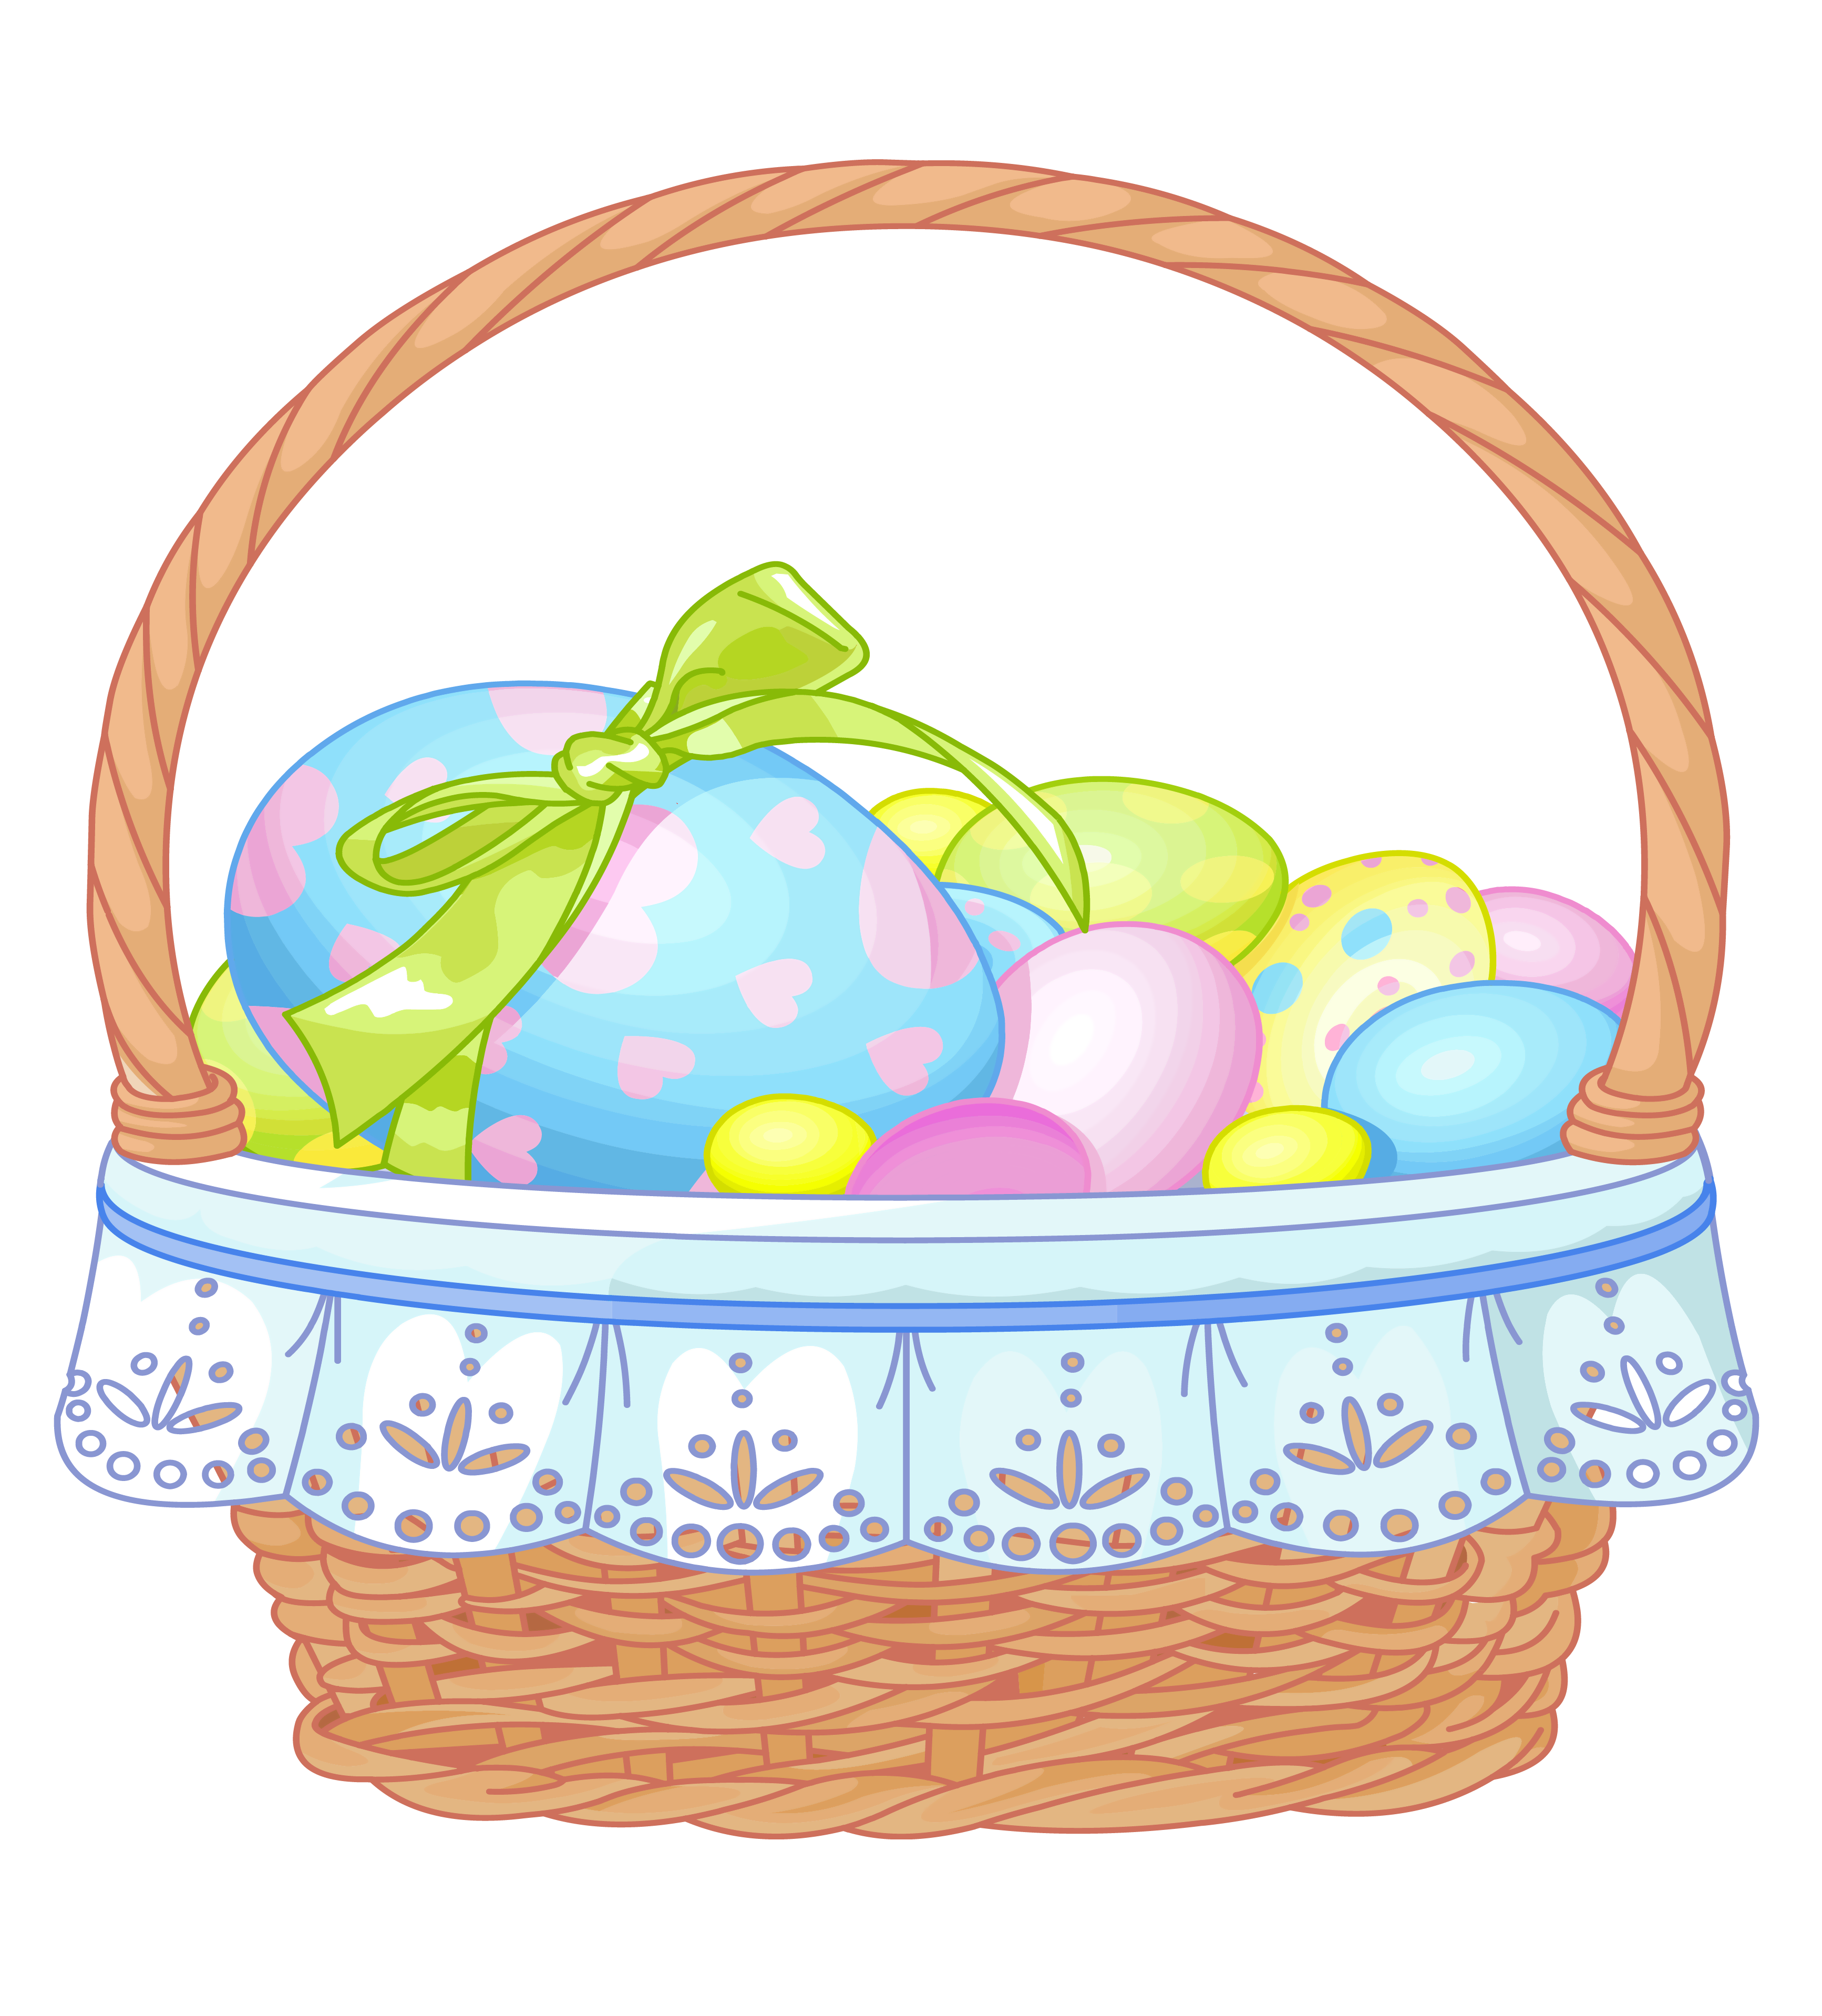 Easter Basket With Eggs Transparent Clip-Easter Basket with Eggs Transparent Clipart-9